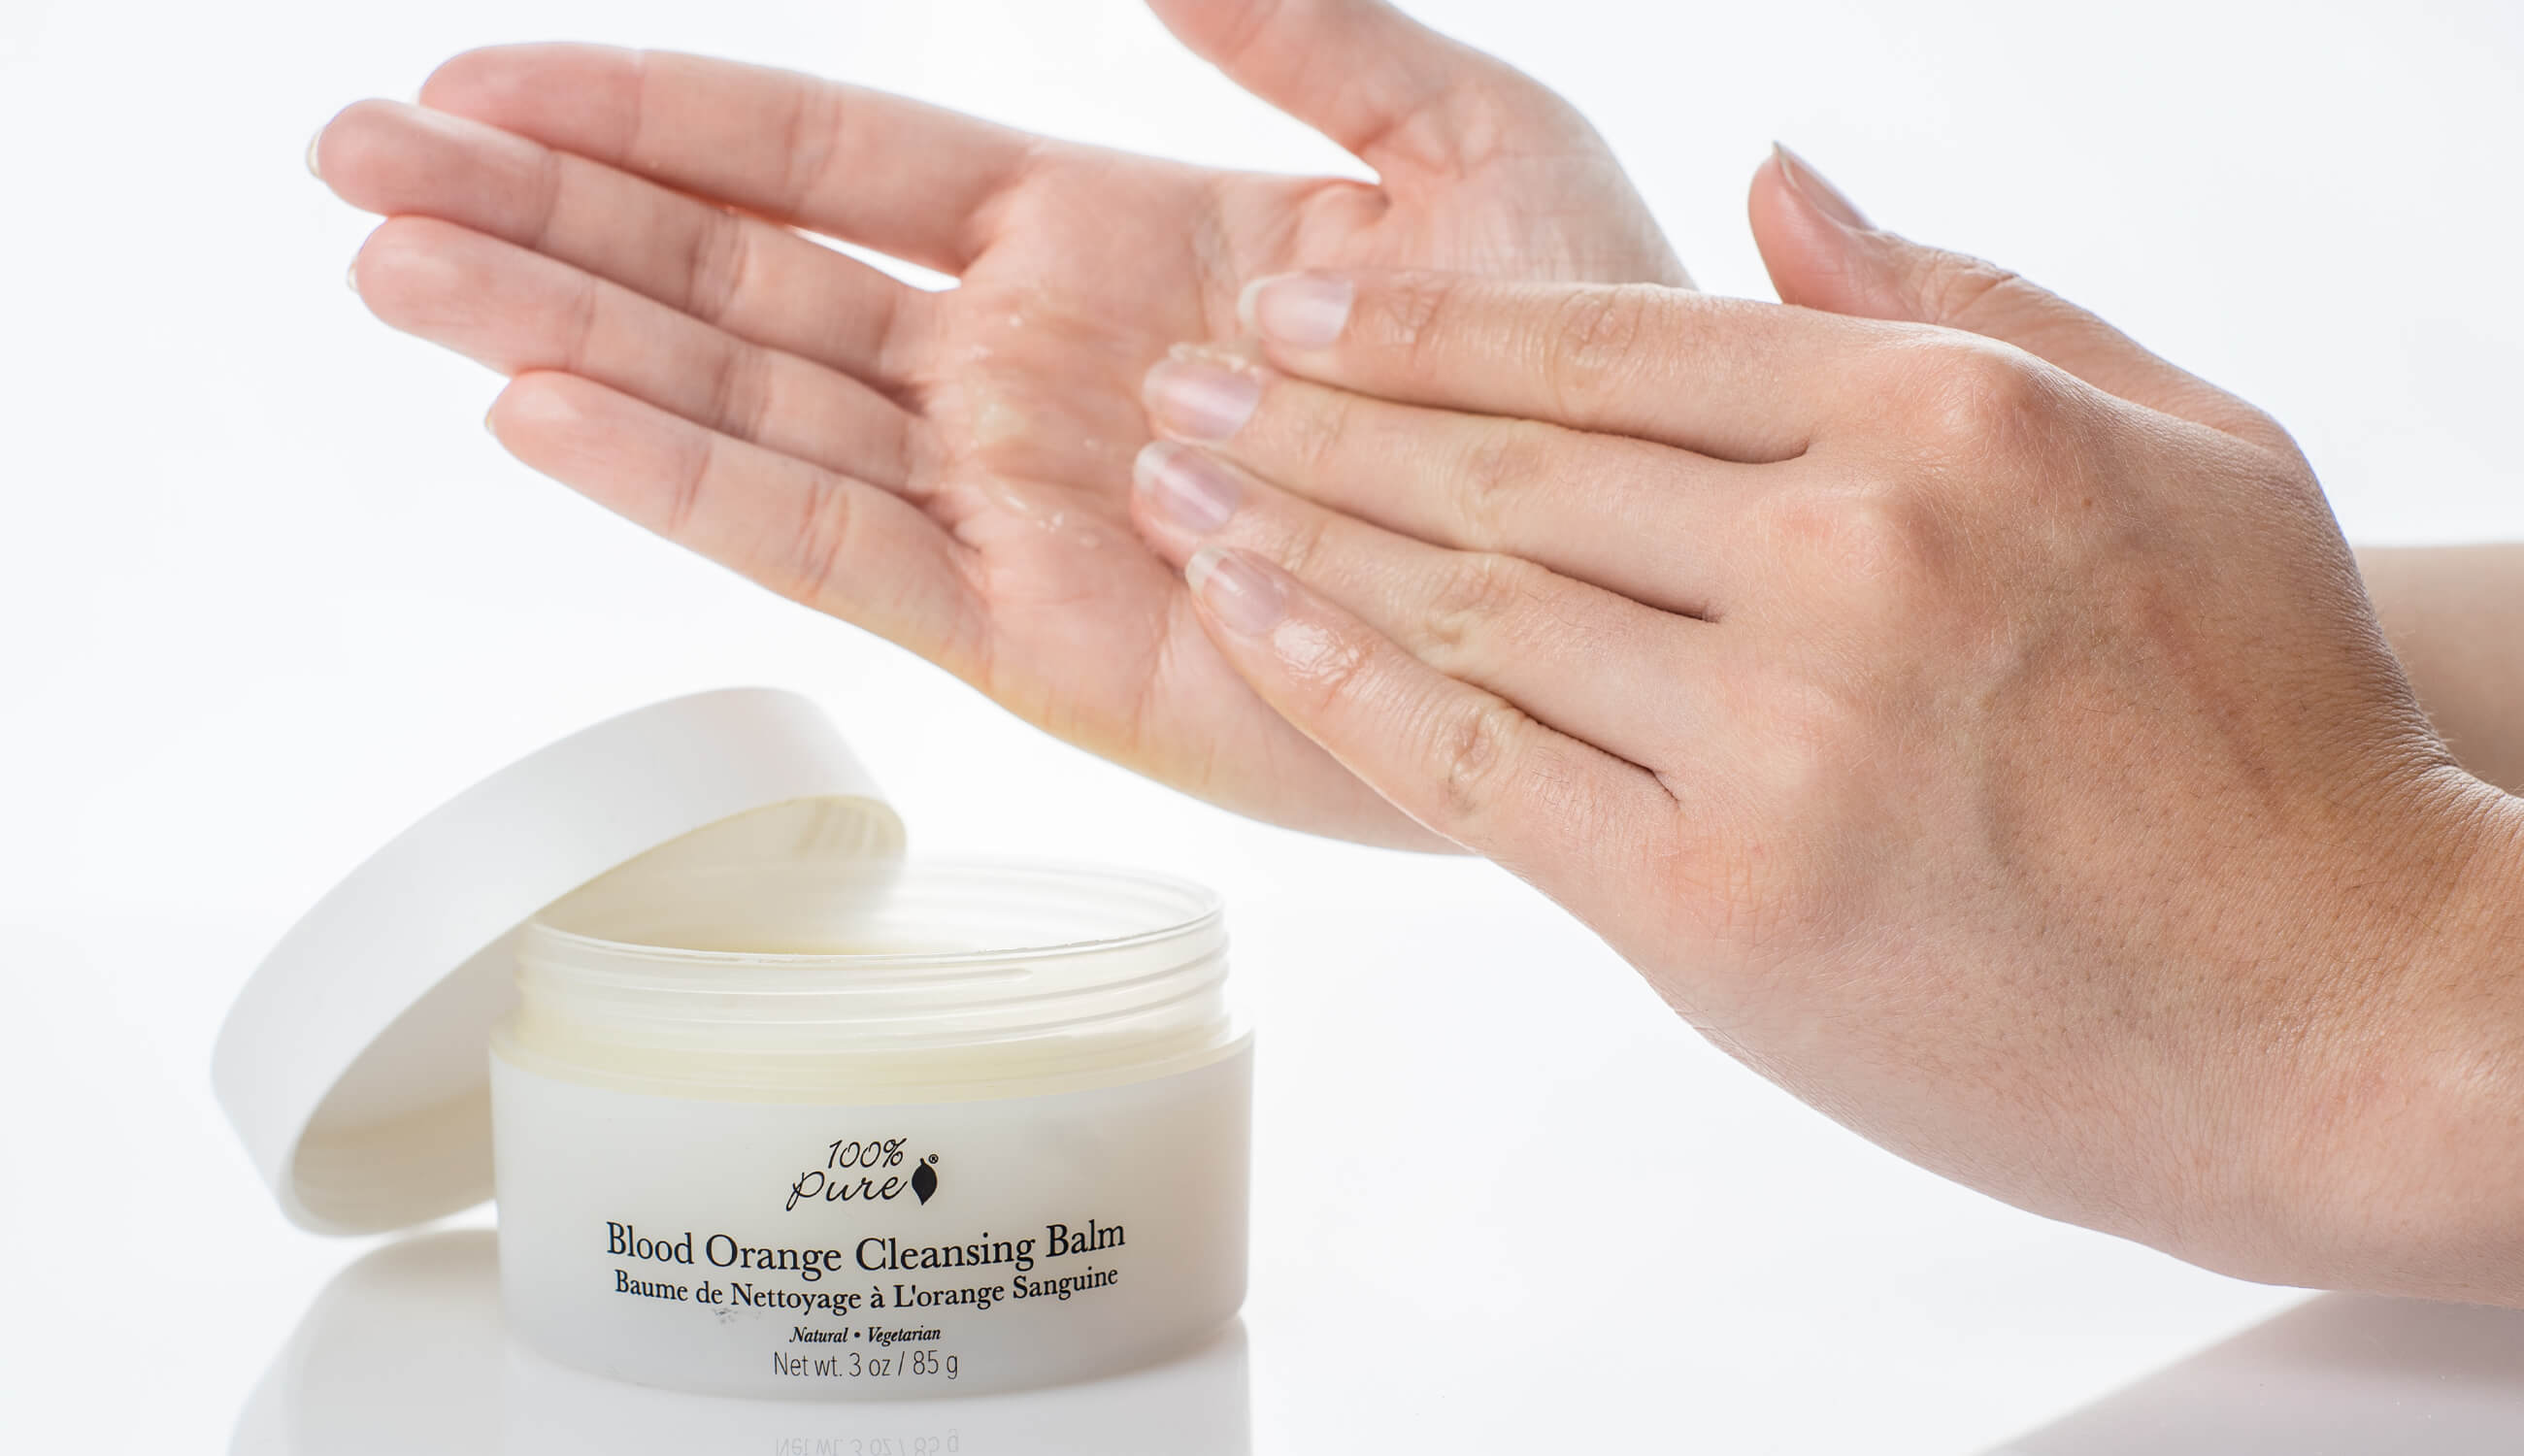 Cleansing balm hands